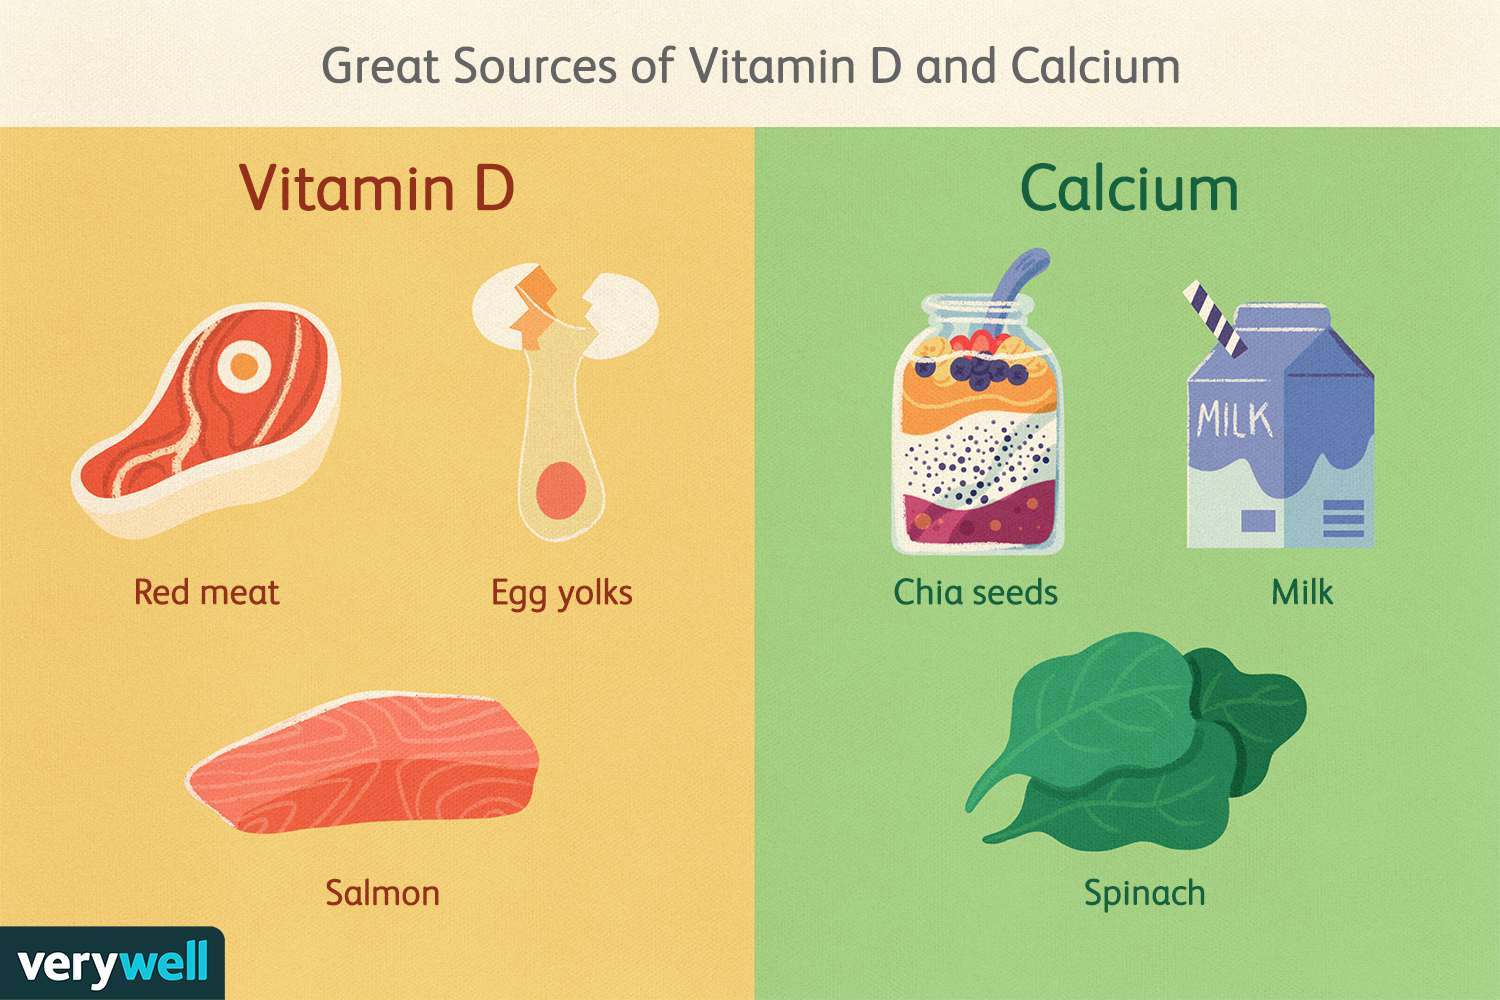 Great Sources of Vitamin D and Calcium